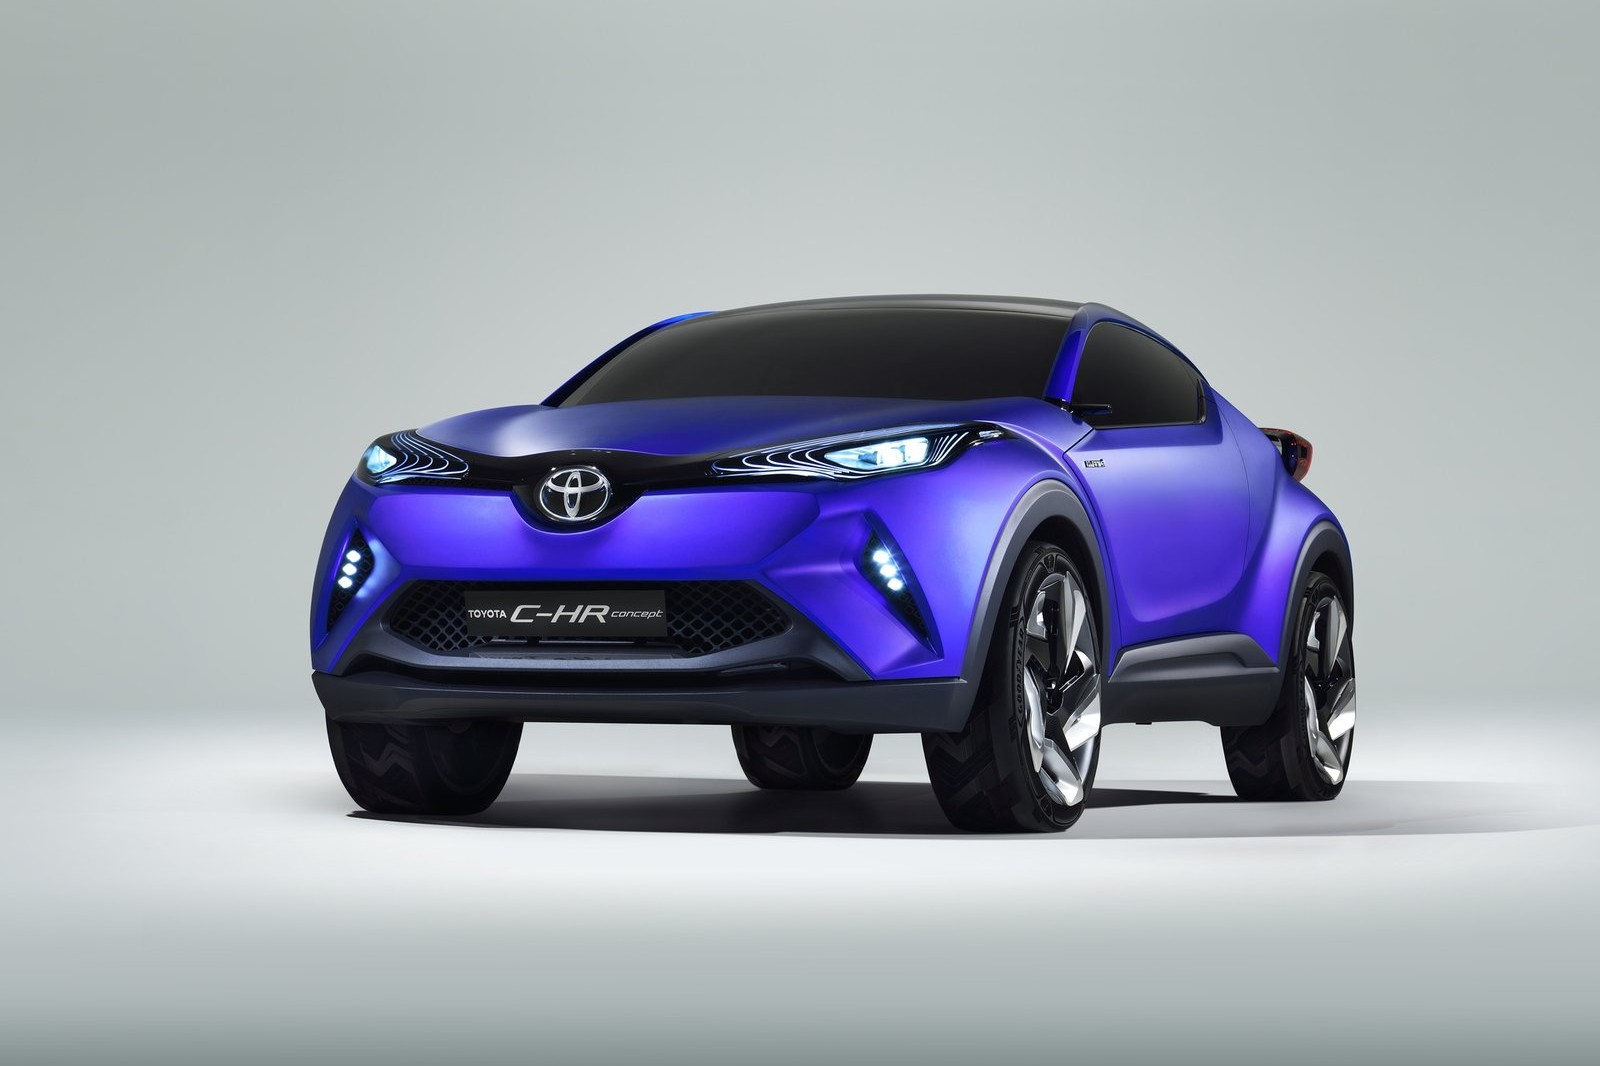 new toyota compact crossover set for 2016 geneva auto show debut. Black Bedroom Furniture Sets. Home Design Ideas